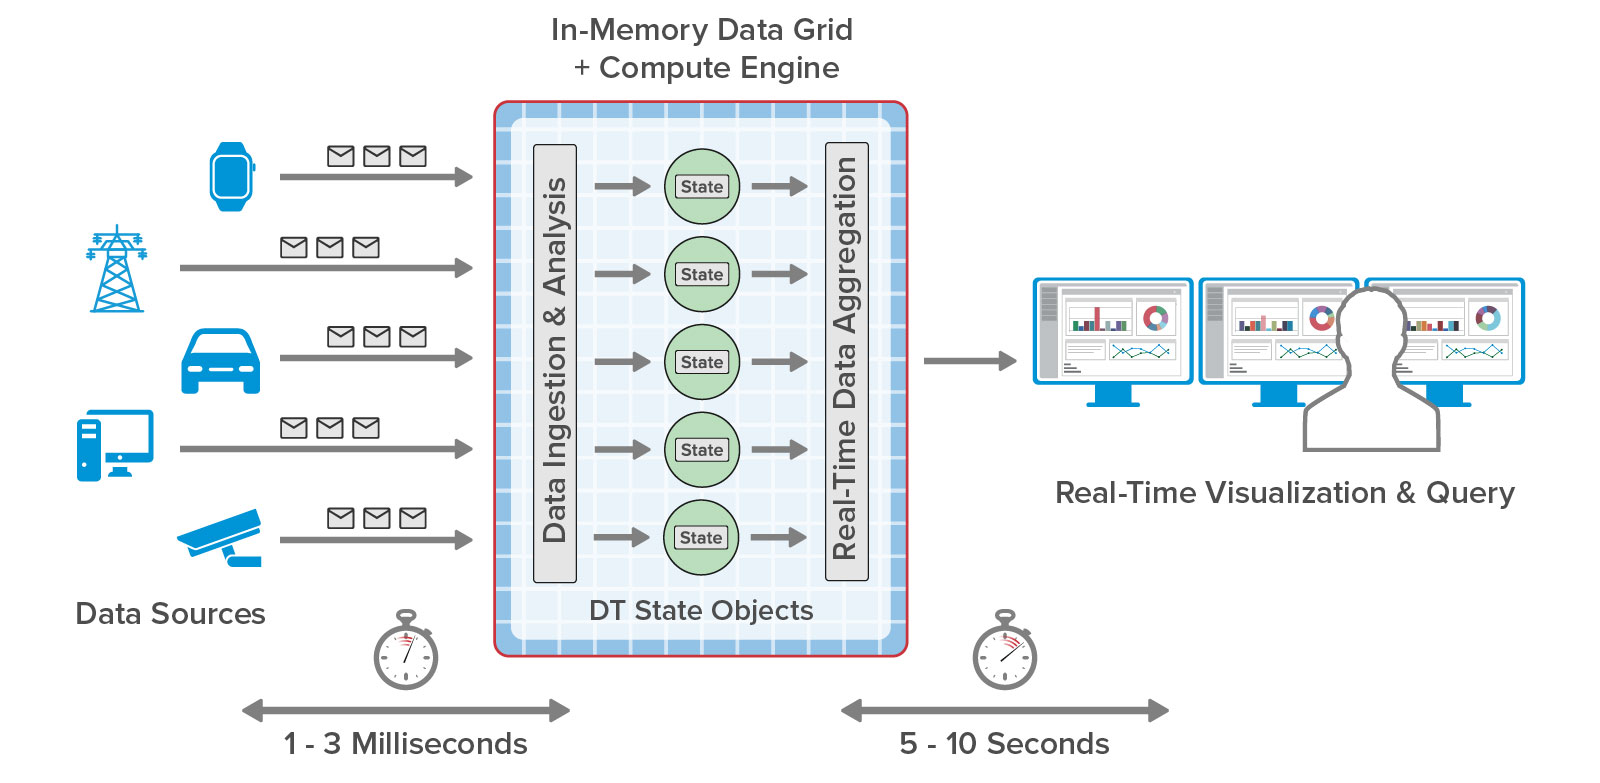 Real-time digital twins ingest, analyze, and aggregate incoming telemetry for visualization.